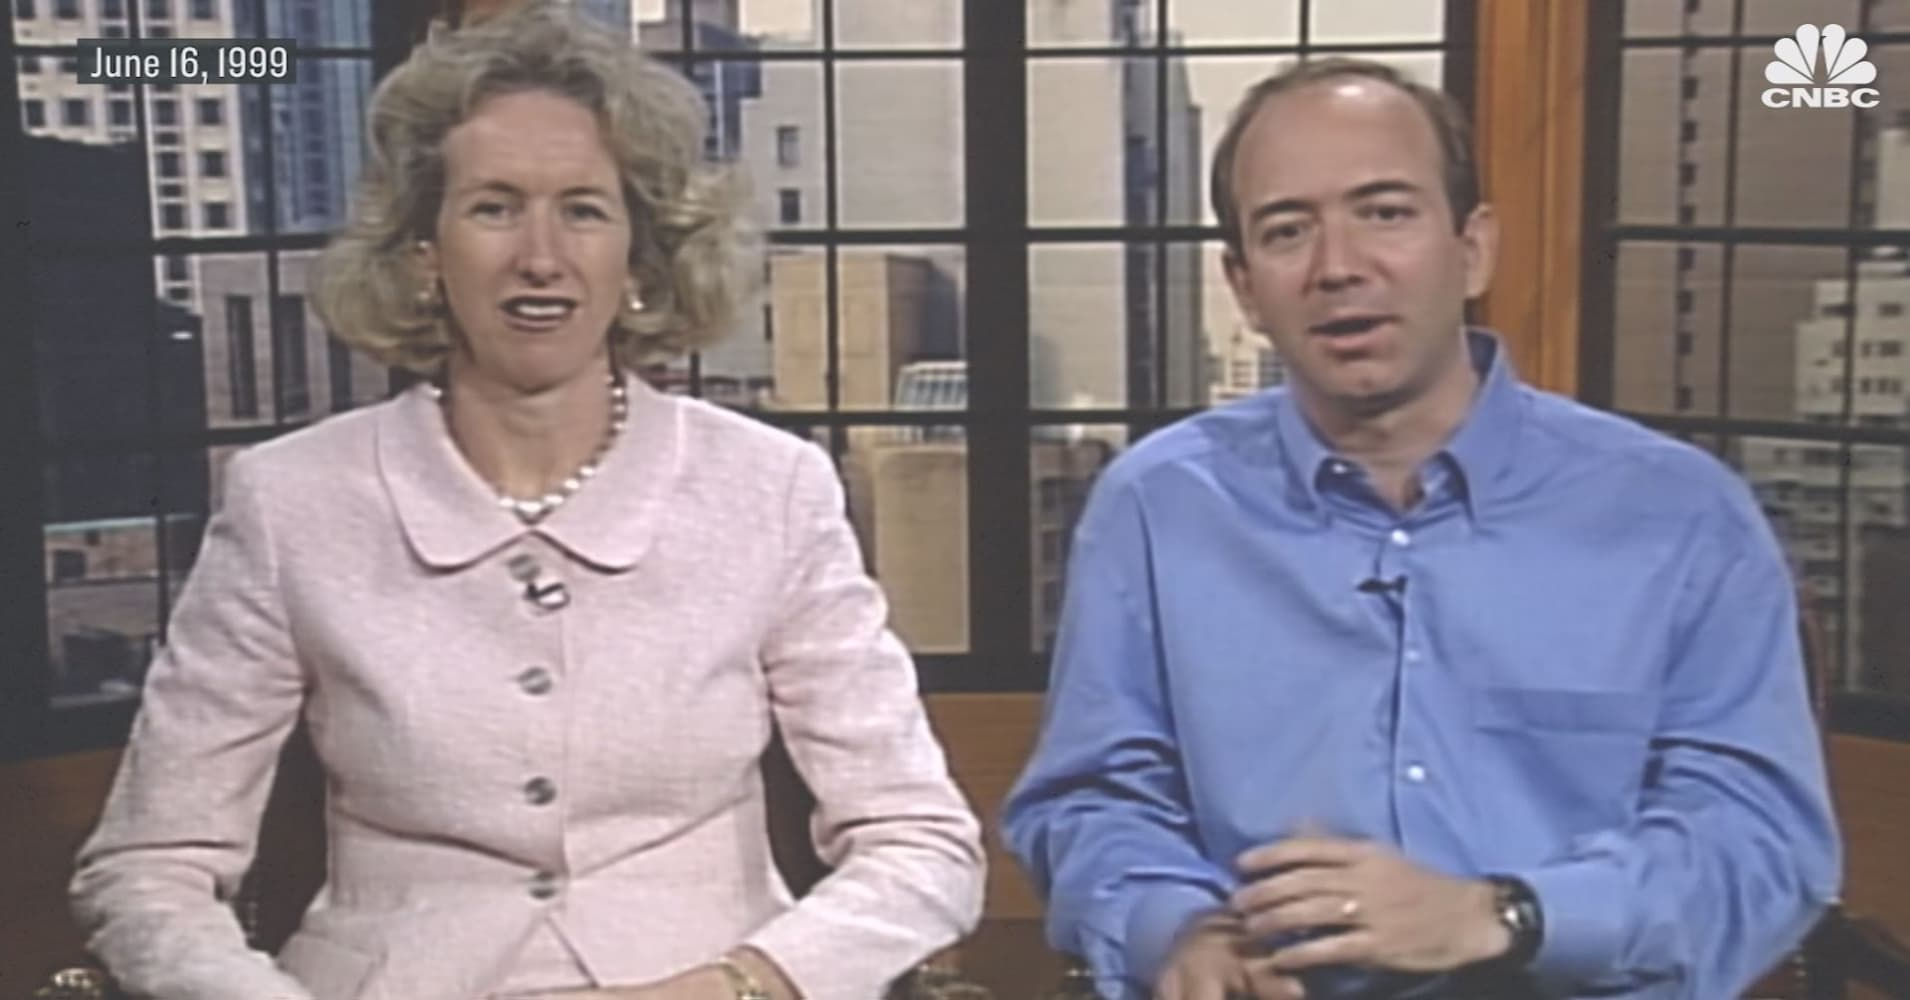 Amazon Ceo Jeff Bezos Speaks To Cnbc In 1999 About Its Sotheby S Deal